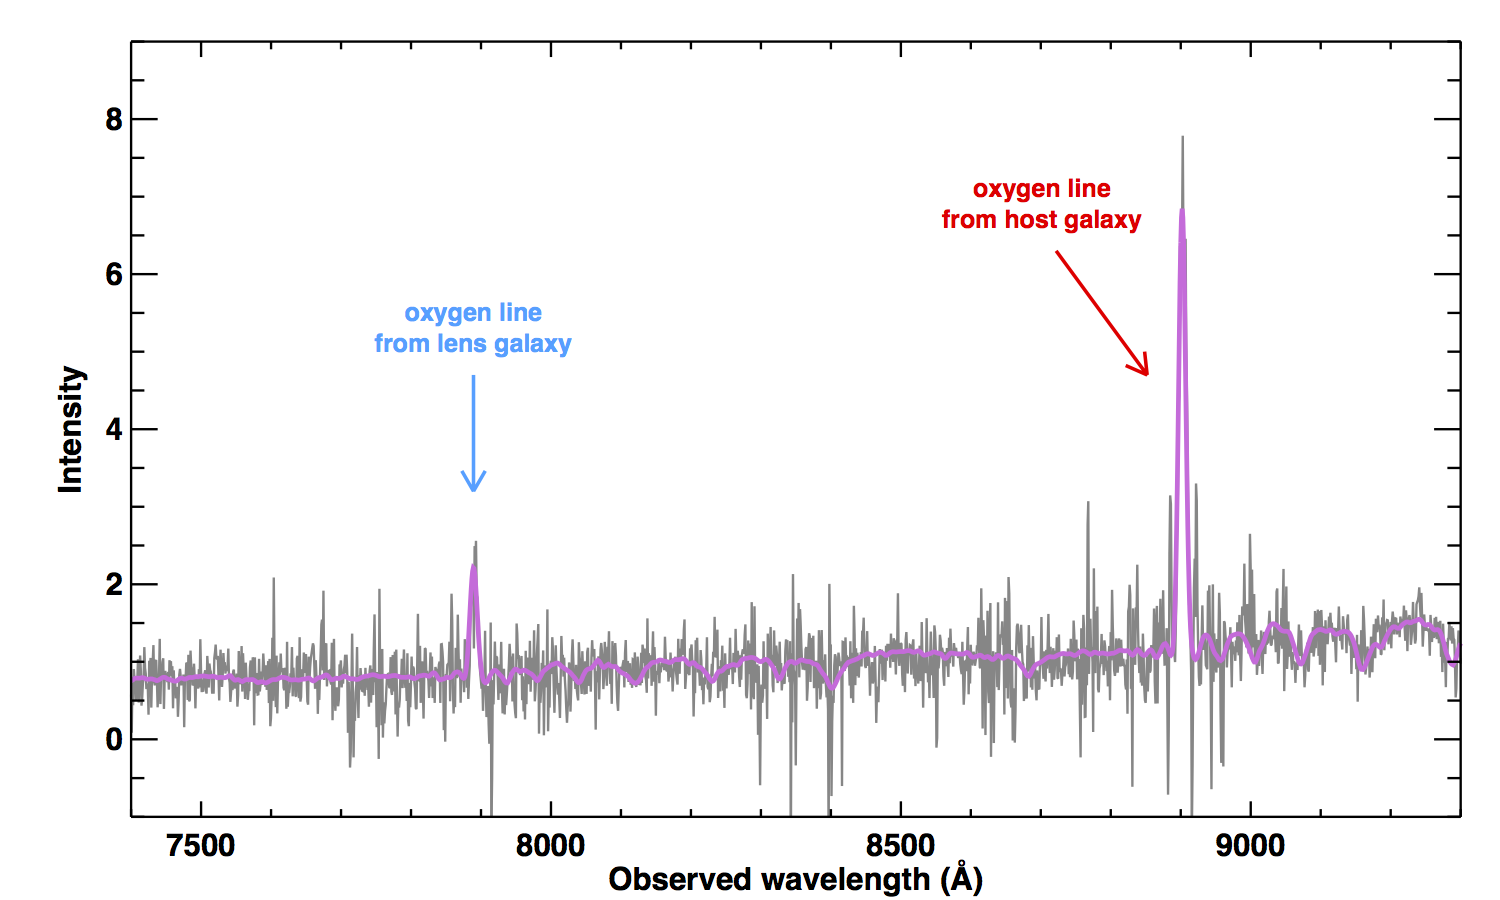 The observed spectra using the Low-Resolution Imaging Spectrograph on the 10 meter Keck-I telescope. (Credit: Kavli IPMU)